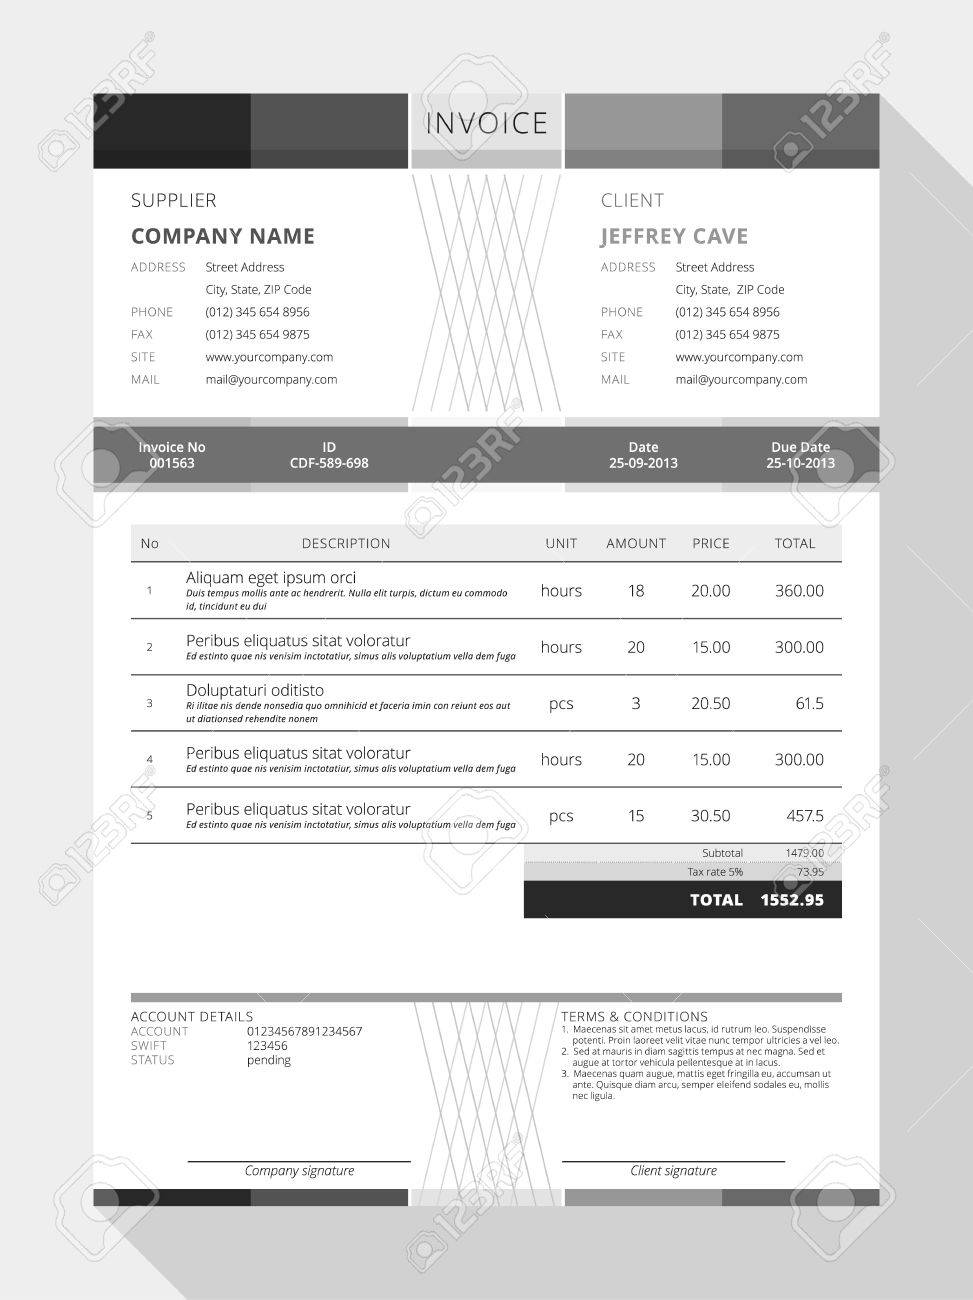 Usdgus  Outstanding Design An Invoice  Professional Graphic Design Invoice  With Goodlooking Vector Customizable Invoice Form Template Design Vector   Design An Invoice With Cool Rental Receipt Template Pdf Also Sample Of Money Receipt In Addition Asda Price Check Receipt And Sample Of Cash Receipt As Well As Template For Payment Receipt Additionally Global Depository Receipts Example From Happytomco With Usdgus  Goodlooking Design An Invoice  Professional Graphic Design Invoice  With Cool Vector Customizable Invoice Form Template Design Vector   Design An Invoice And Outstanding Rental Receipt Template Pdf Also Sample Of Money Receipt In Addition Asda Price Check Receipt From Happytomco